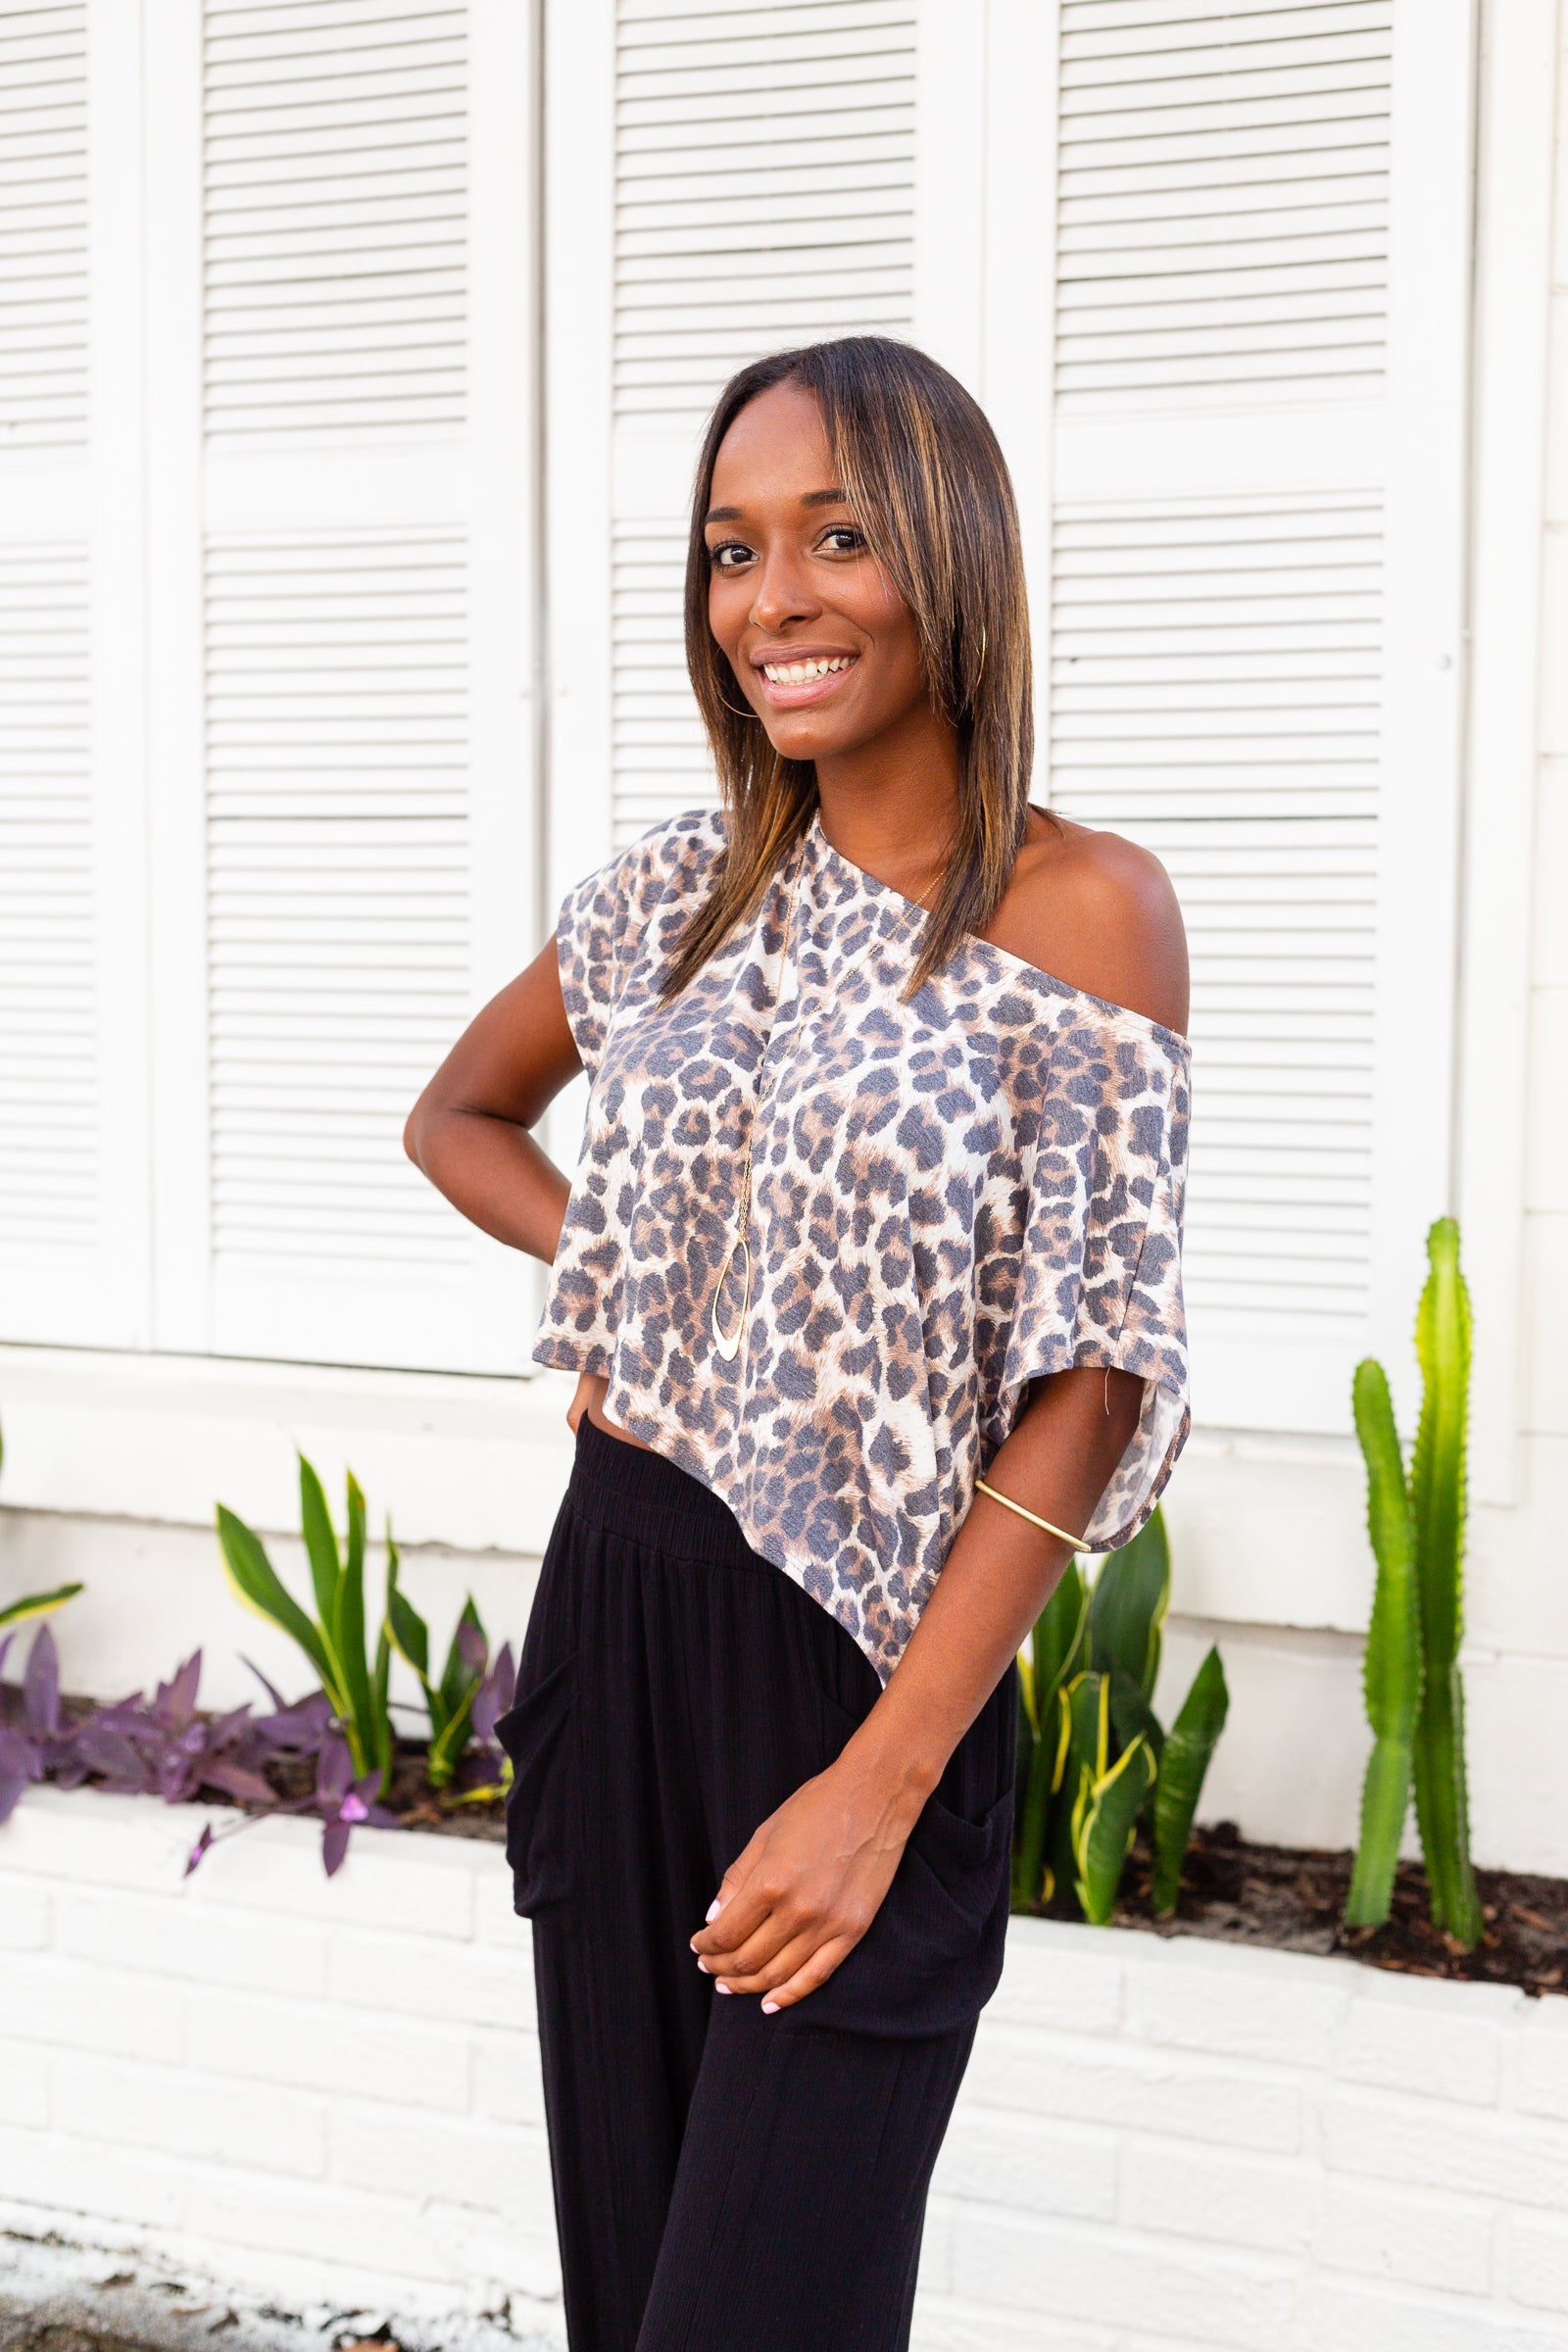 Leopard prints speckle across the fabric of this easy-to-wear t-shirt. Short sleeves attach to a banded u-neckline on an oversized and cropped t-shirt style bodice.